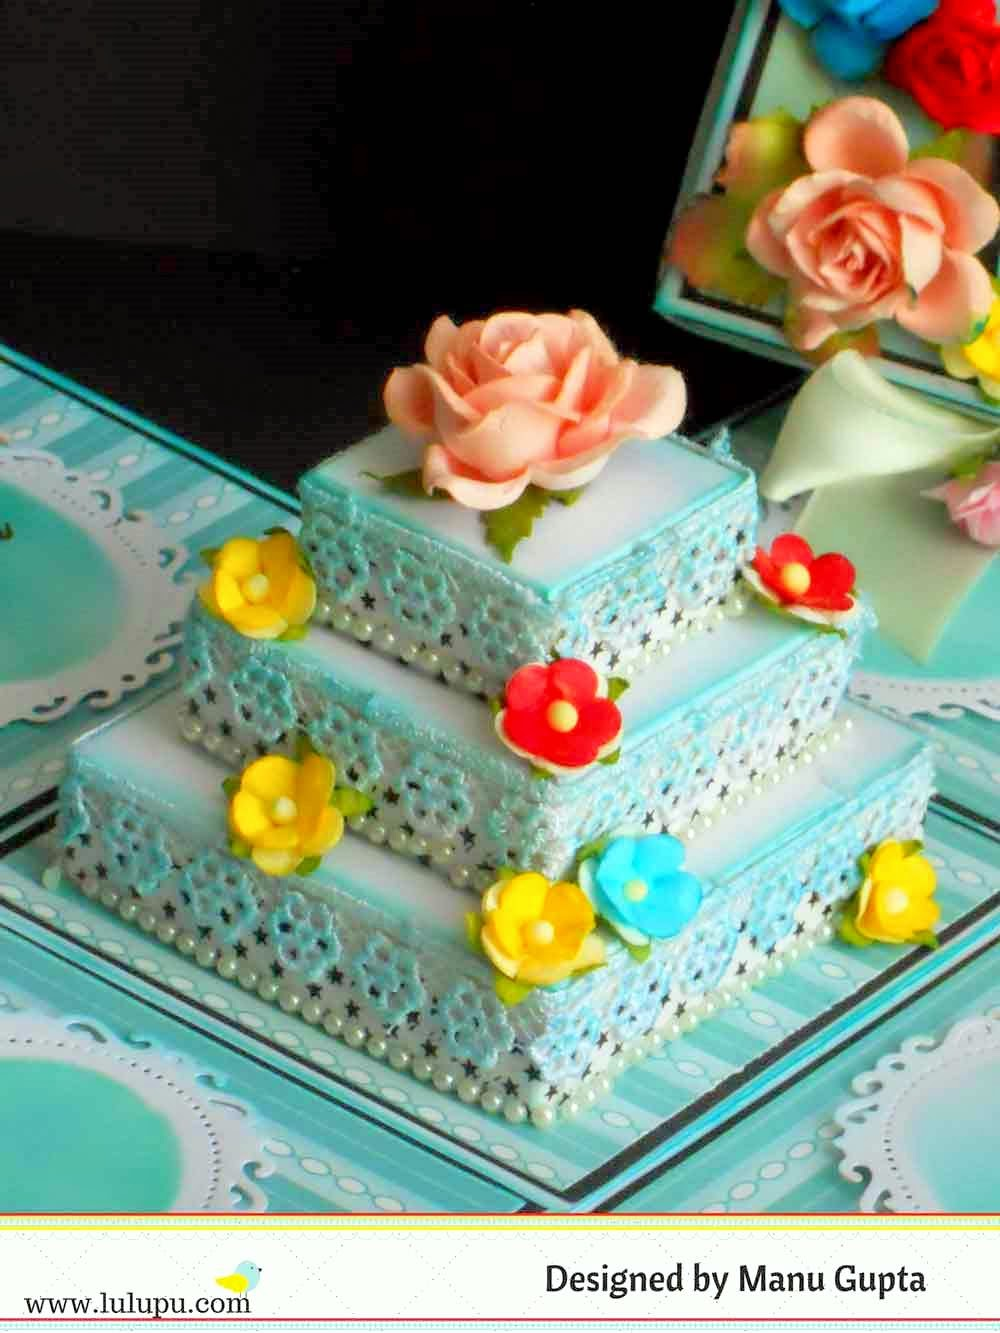 Birthday Decorations Limerick Image Inspiration of Cake and